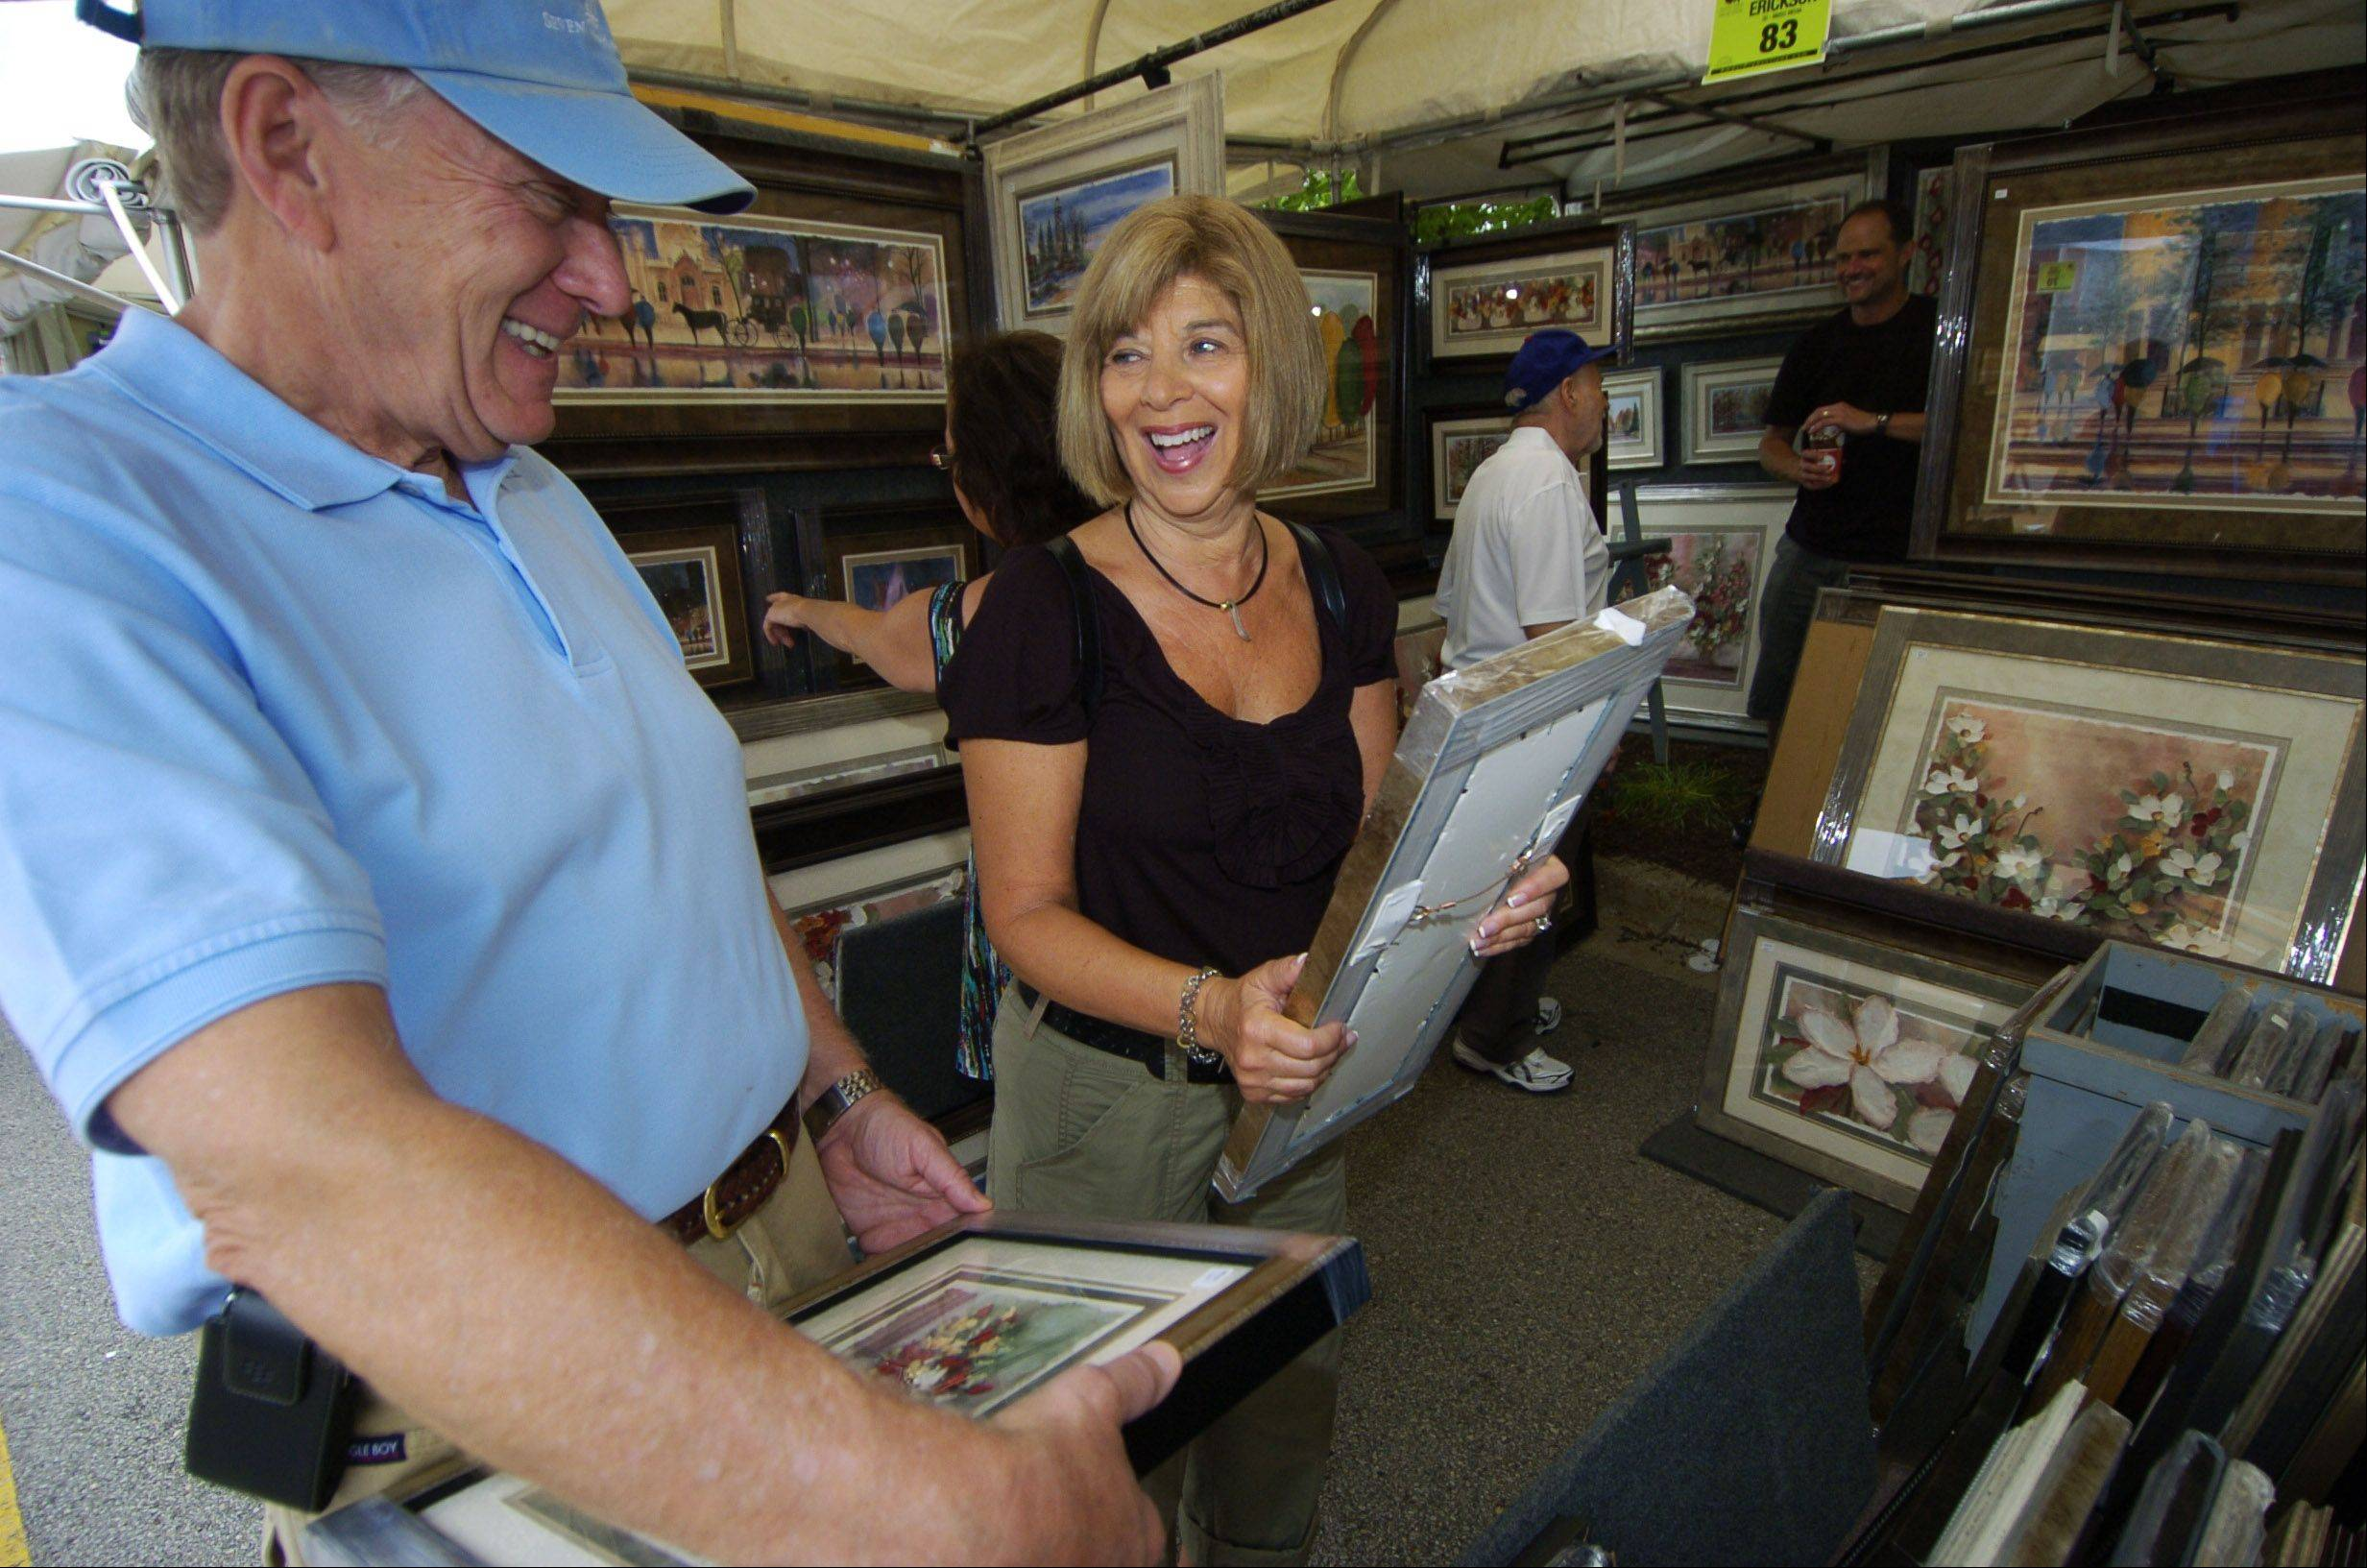 Herb and Bonnie Horn of Glenview view prints during the 2011 Buffalo Grove festival.